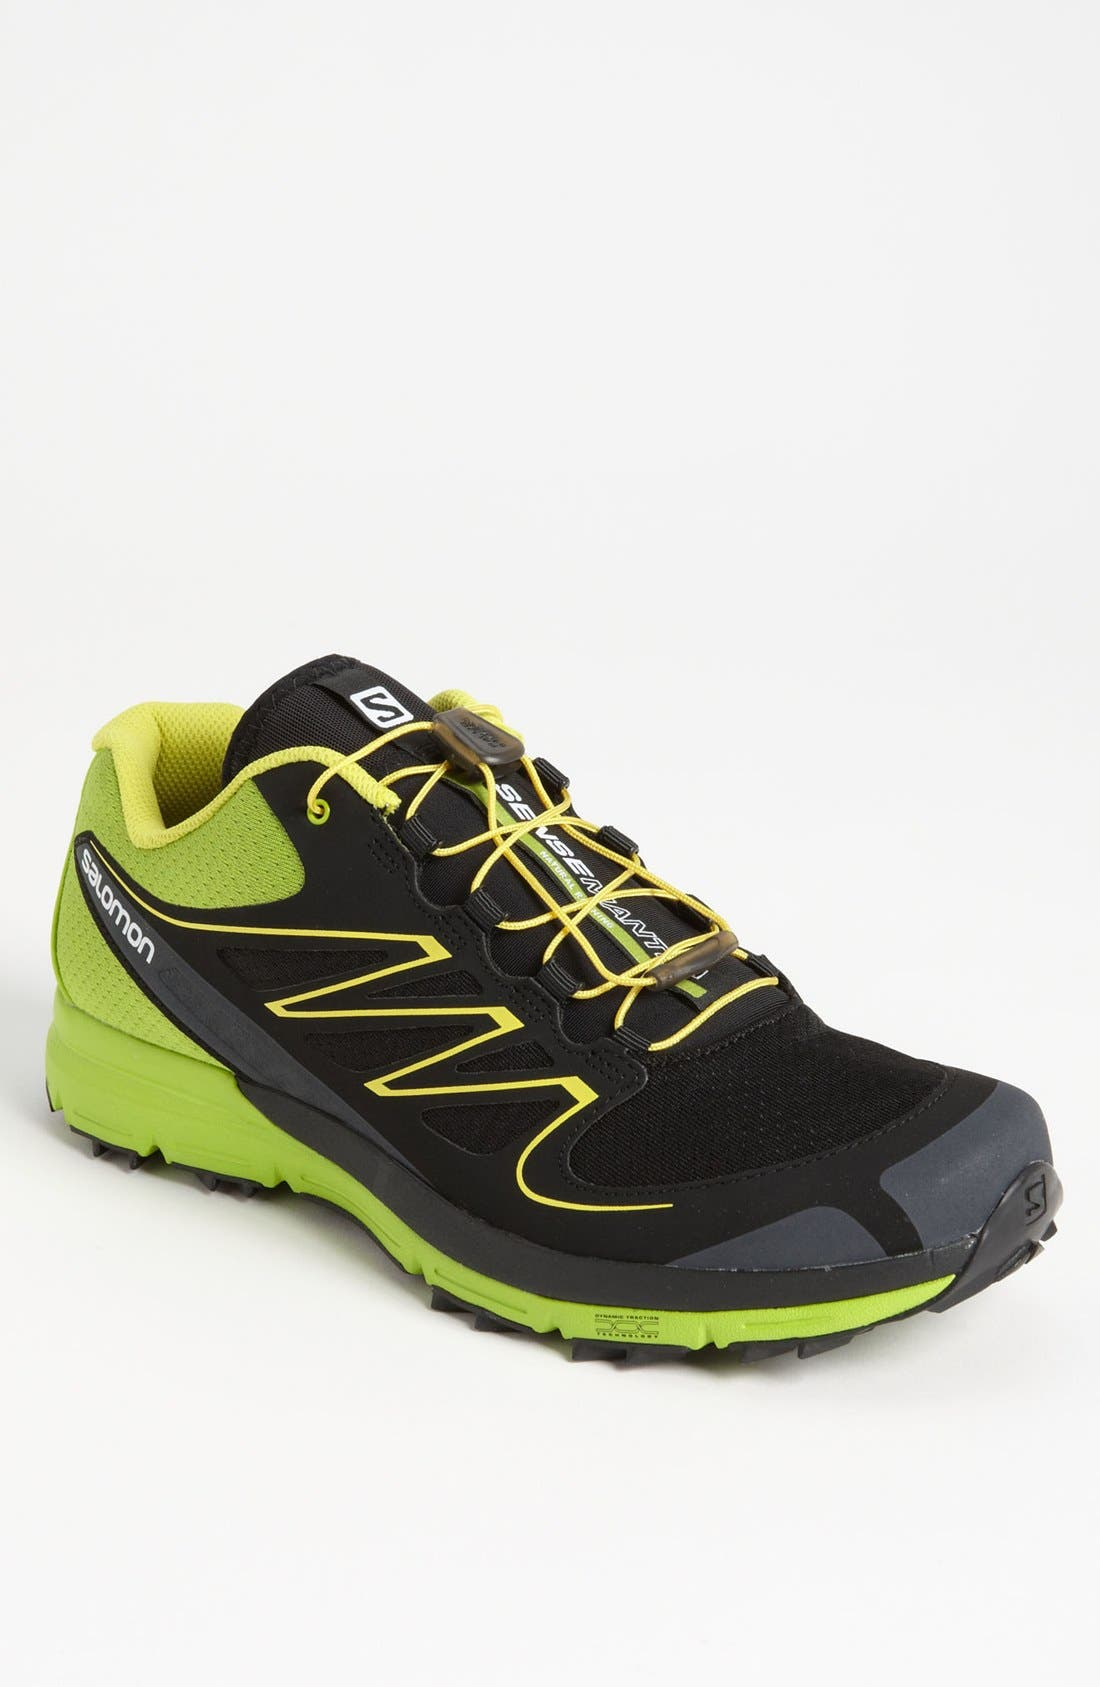 Main Image - Salomon 'Sense Mantra' Running Shoe (Men)